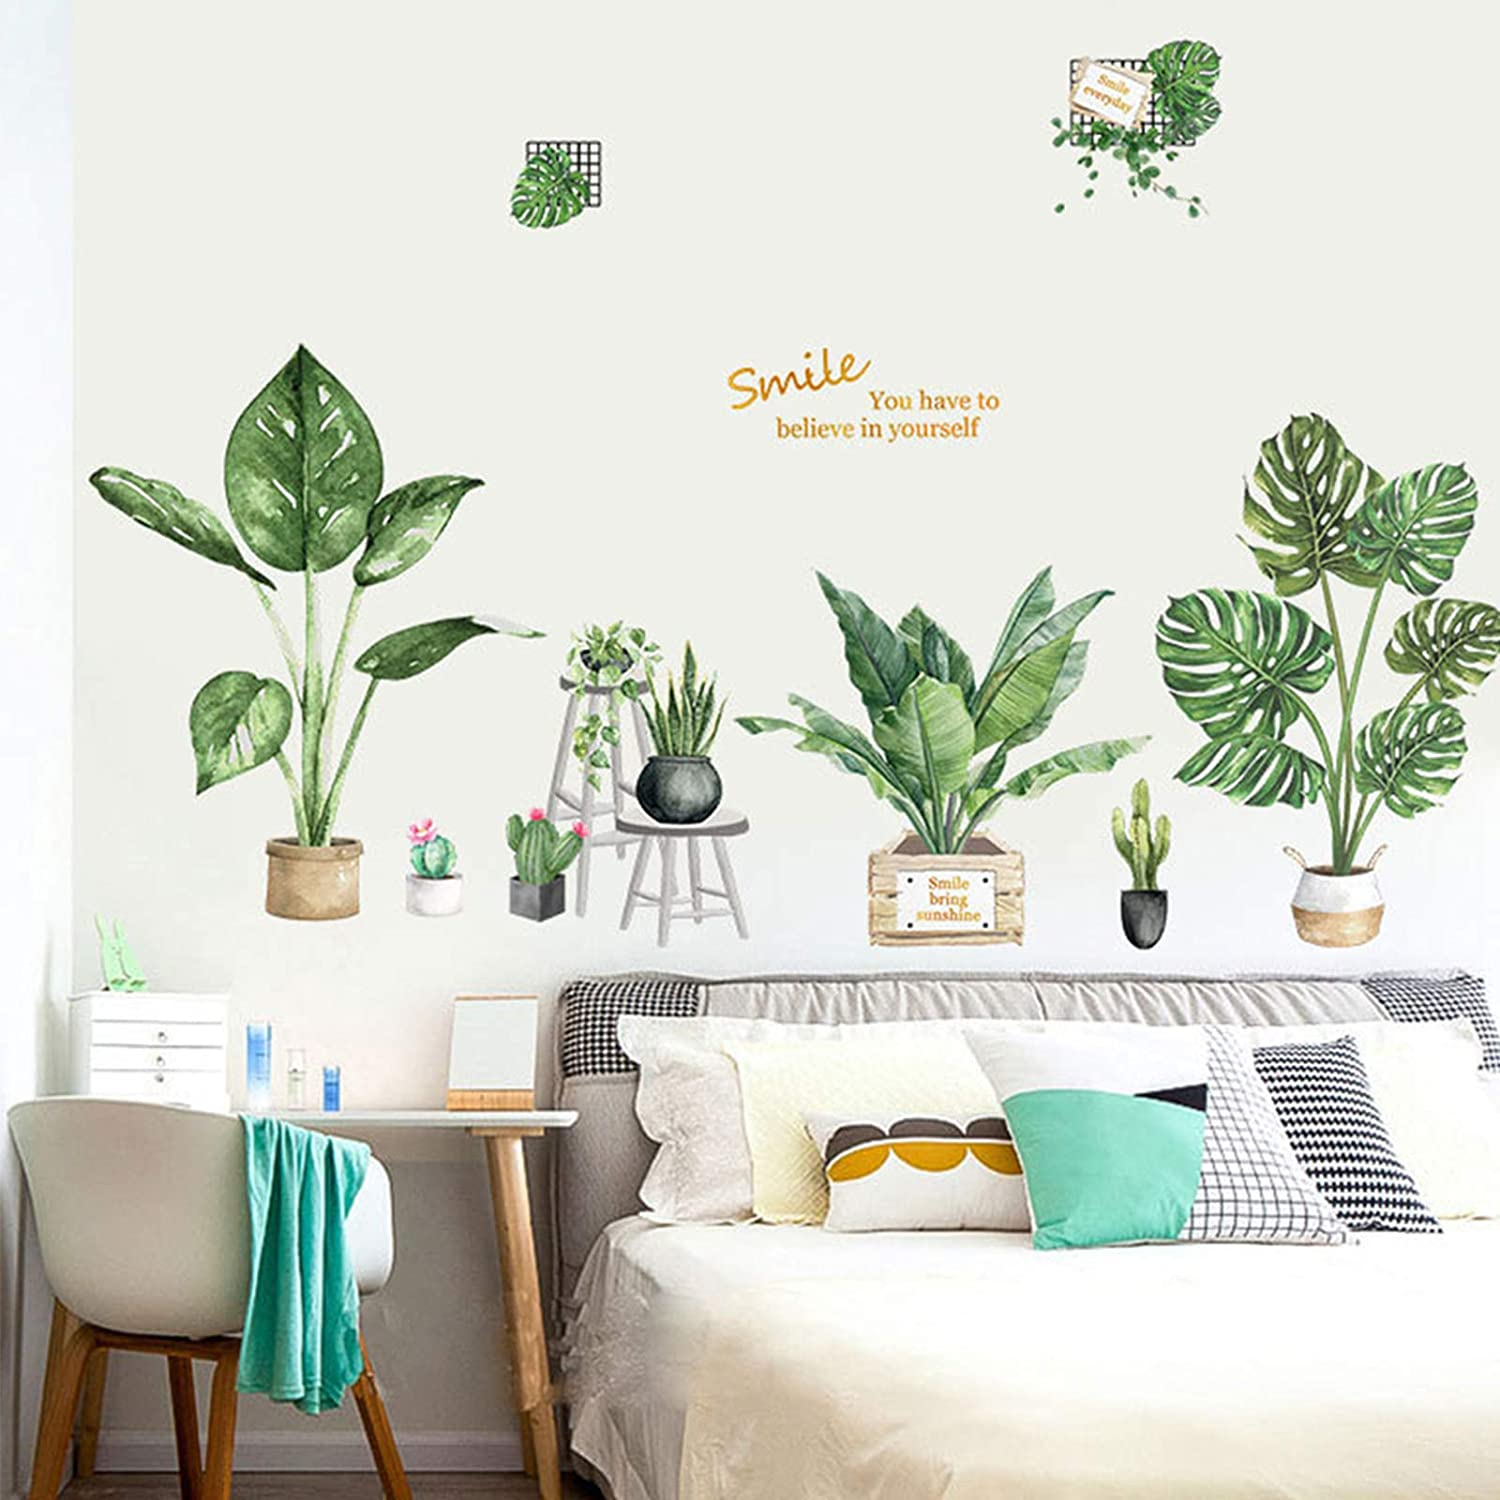 Tropical Green Leaf Wall Decor Vinyl Tropical Plants Nature Palm Wall Stickers Tree Leaves Wall Decorations Removeable Art Murals for Kids Rooms TV Wall Bar Counter Home Office Bedroom Nursery Decor